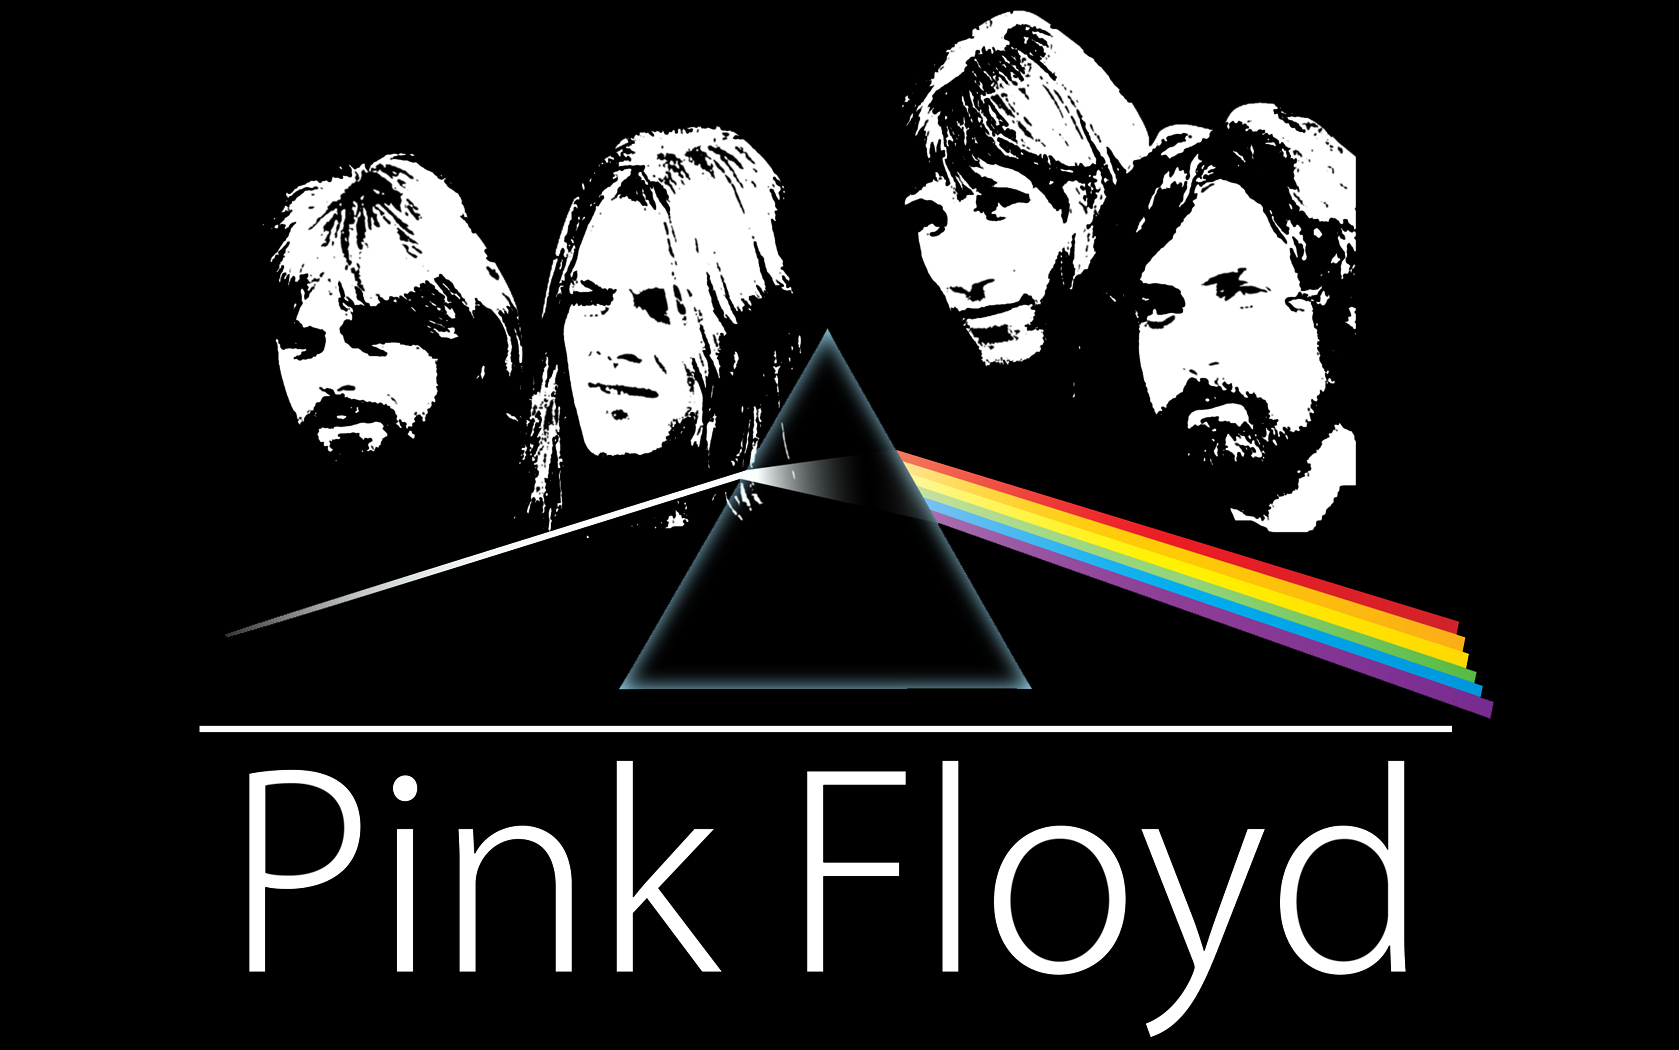 Pink Floyd were an English rock band that achieved international acclaim with their progressive and psychedelic music. Distinguished by their use of ...